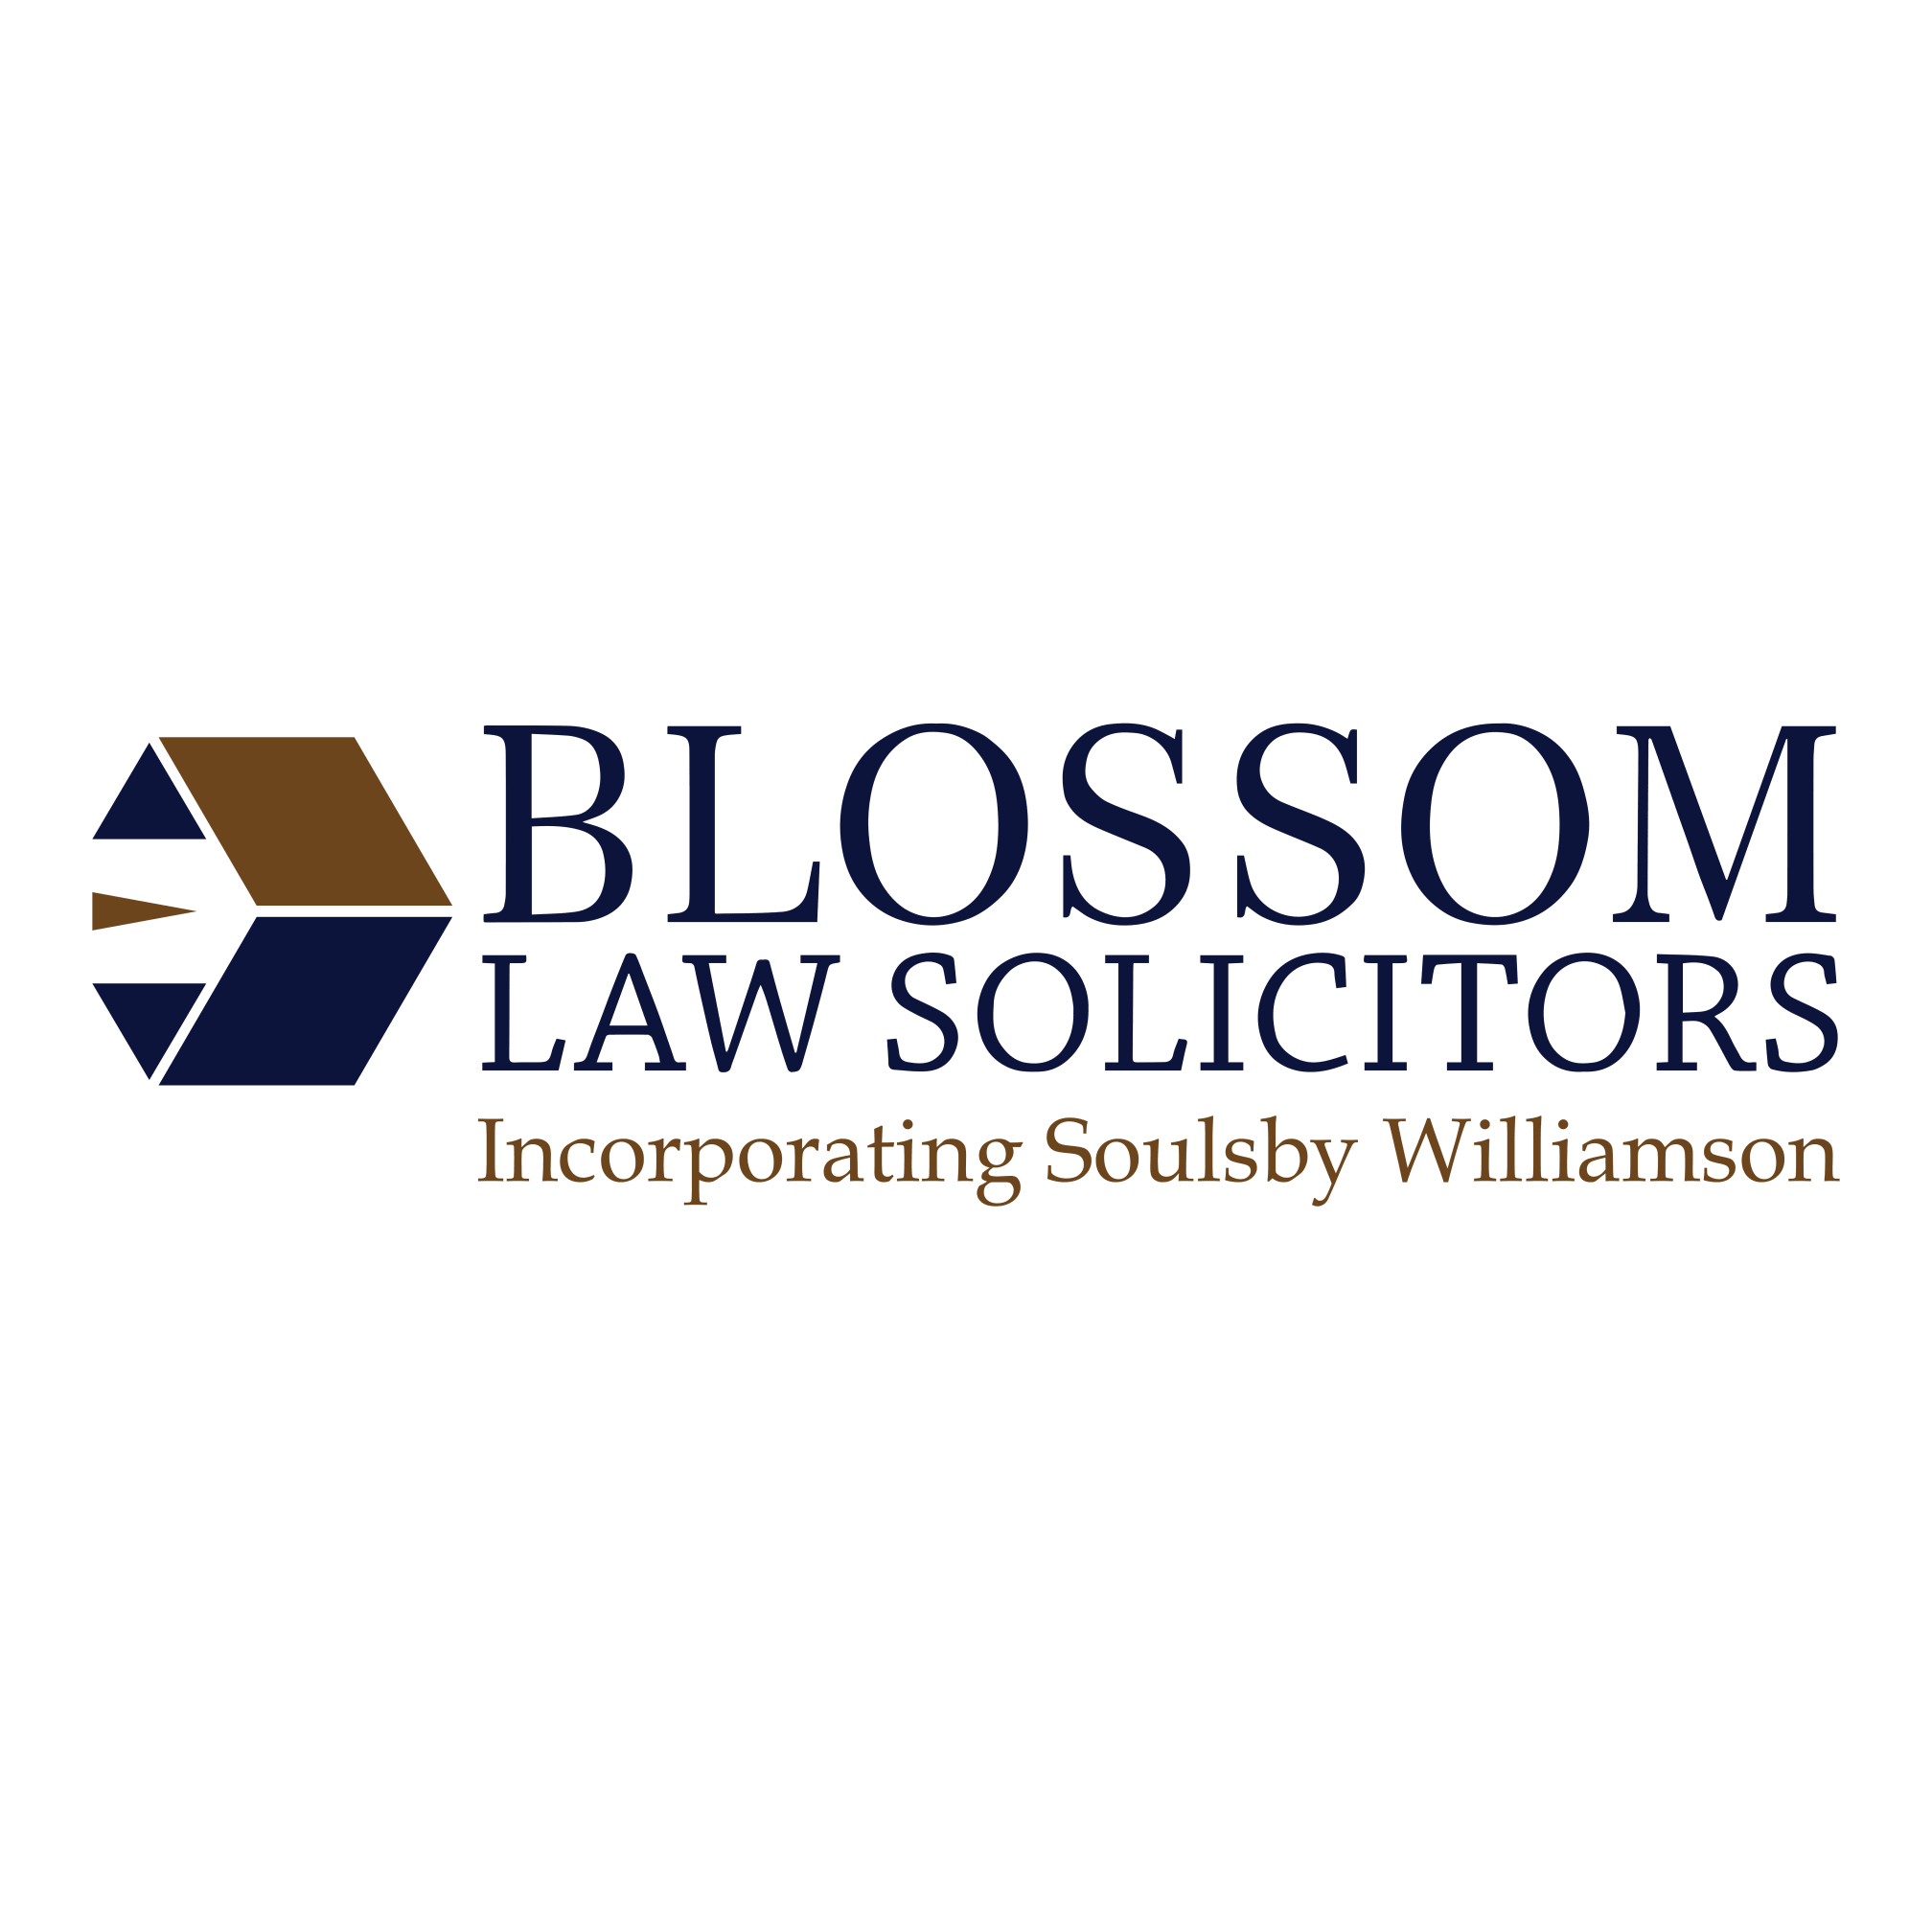 Blossom Law Solicitors Incorporating Soulsby Williamson - Ashford, Surrey TW15 2RP - 020 7998 1641 | ShowMeLocal.com